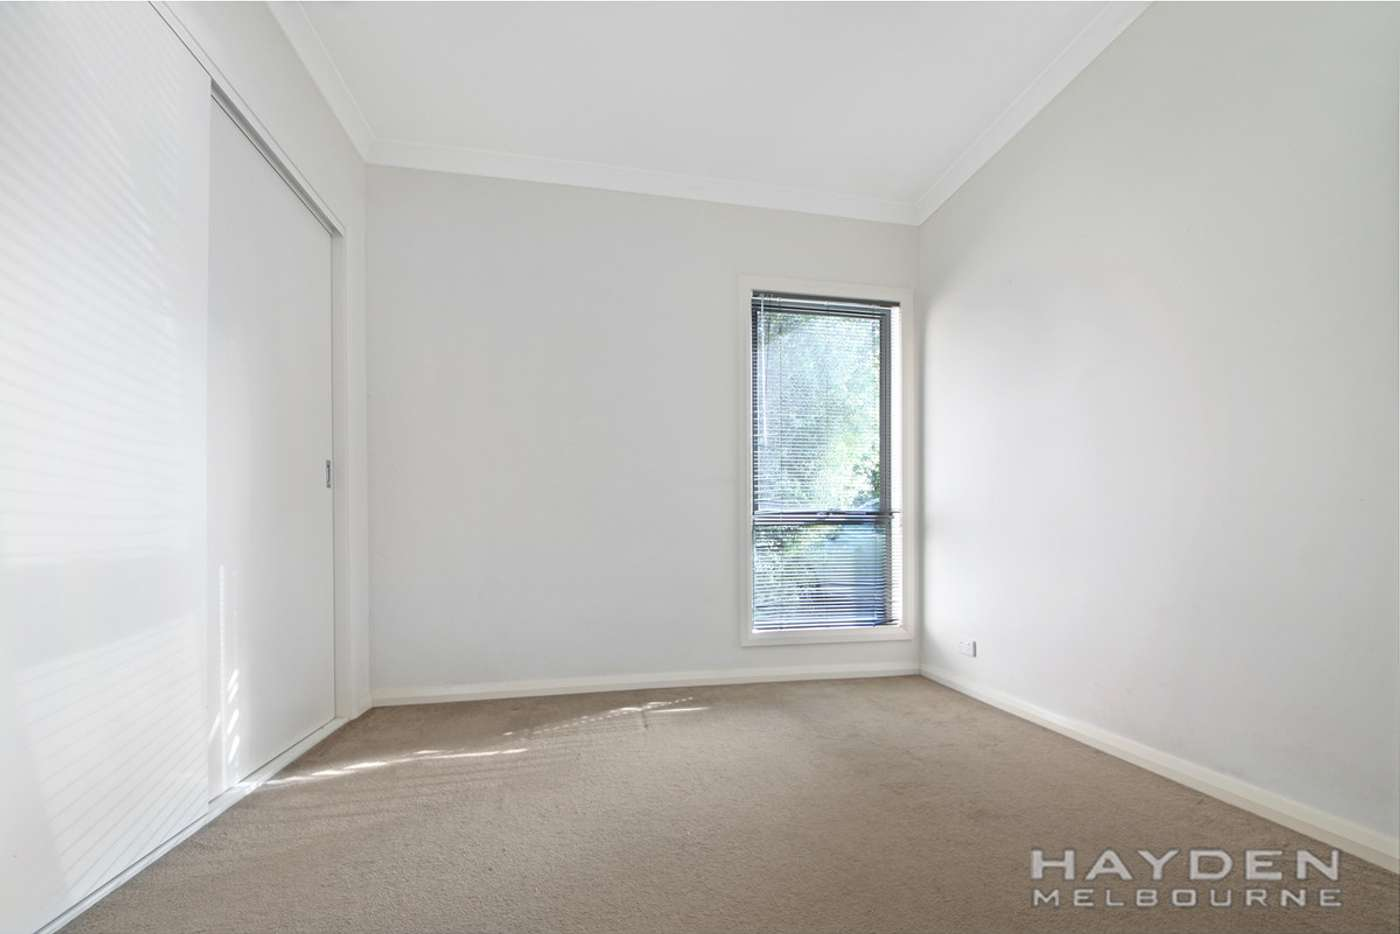 Sixth view of Homely unit listing, 2/1 Dickinson Street, Hadfield VIC 3046